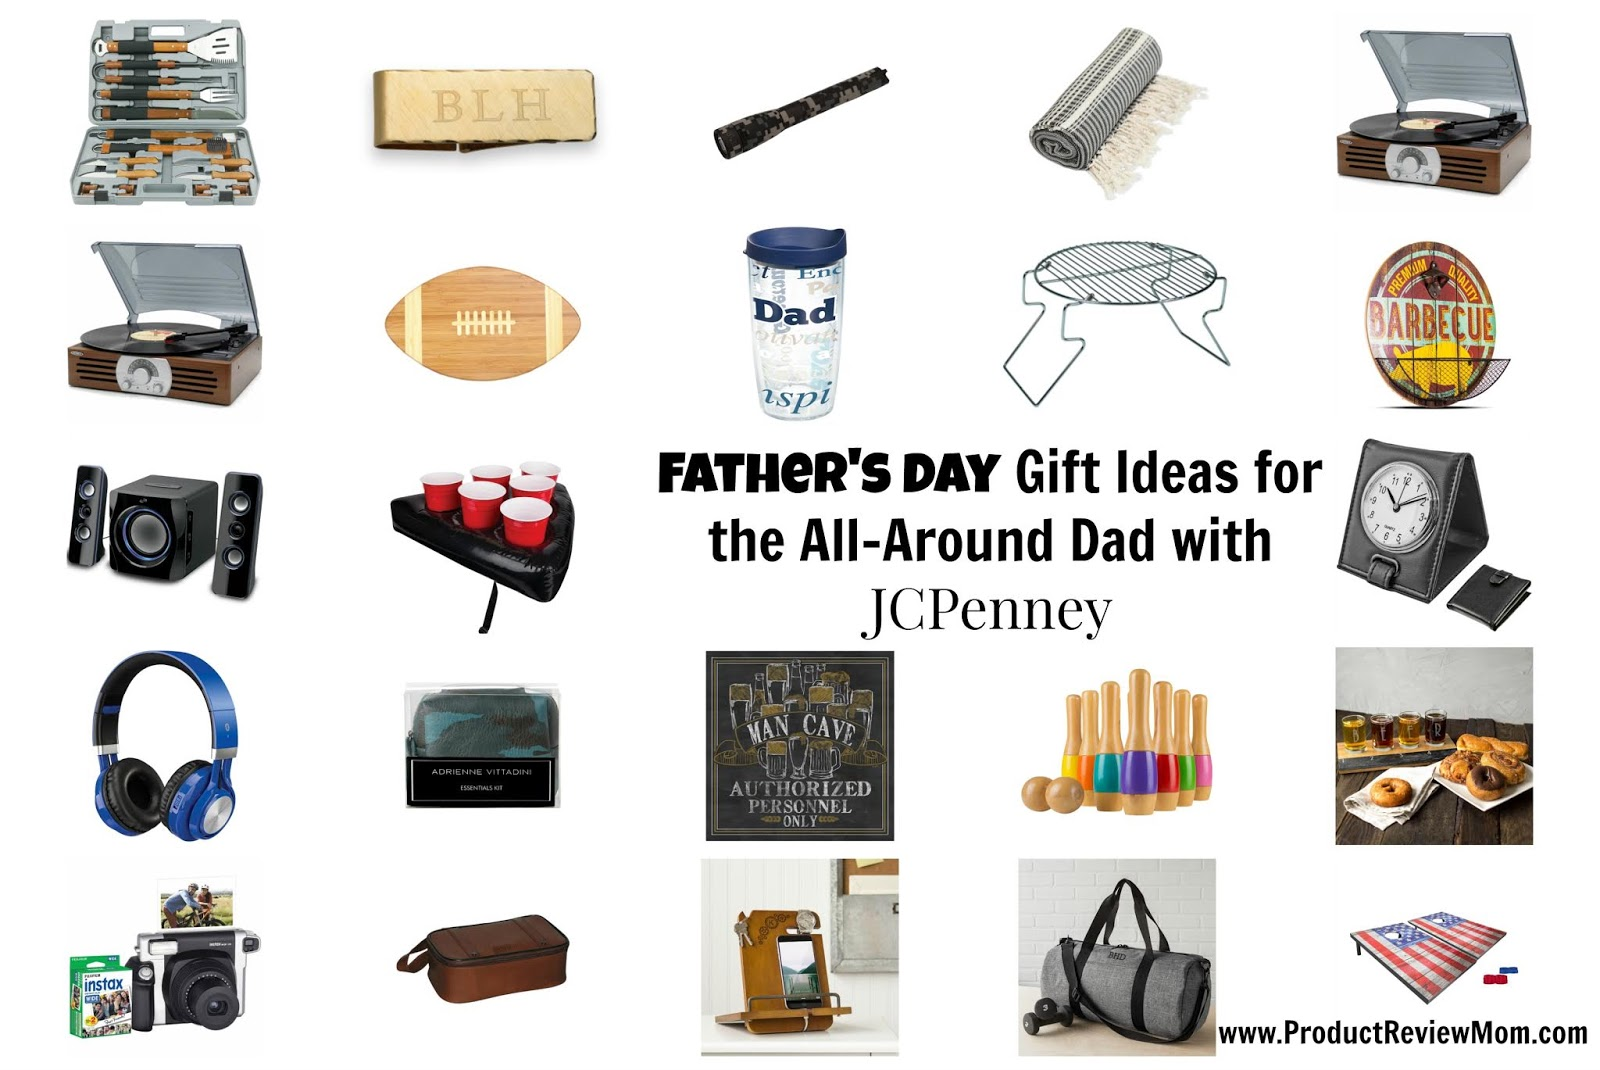 Father's Day Gift Ideas for the All-Around Dad with JCPenney  via  www.productreviewmom.com